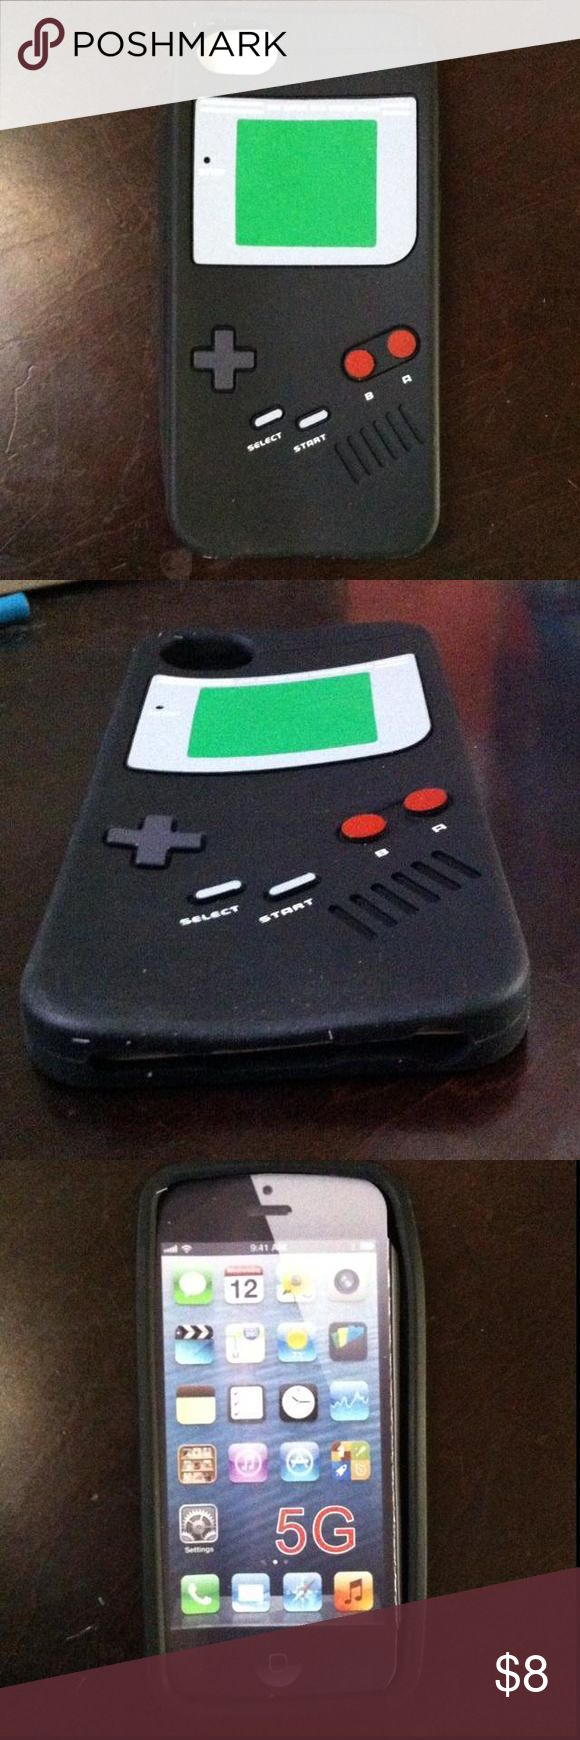 Black Gameboy iPhone 5G case New. It's a black Gameboy iPhone 5G case Accessories Phone Cases